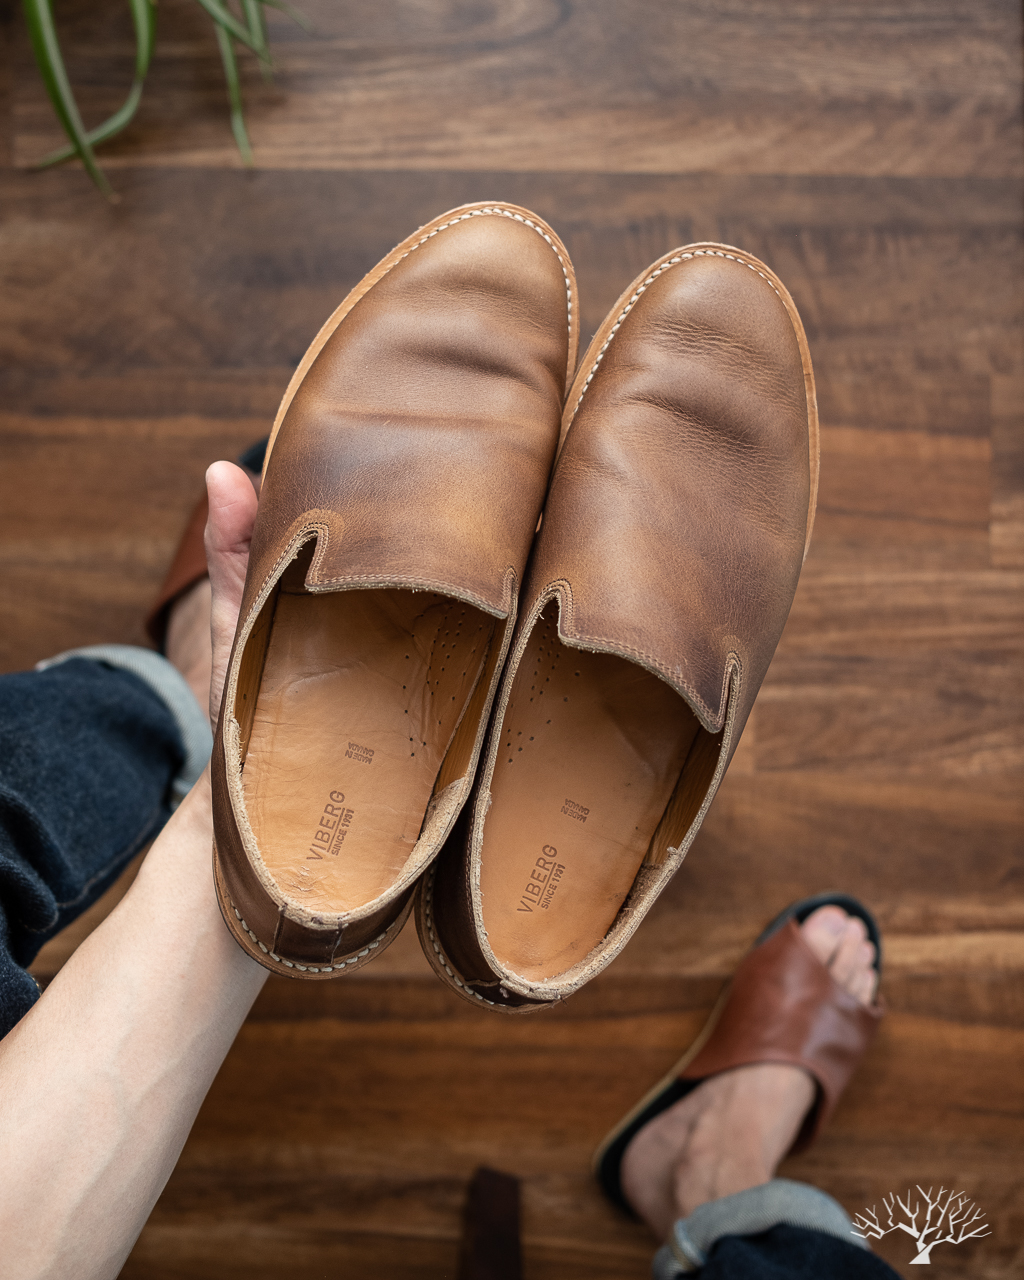 Viberg Camel Oiled Calf Slippers Worn 1 Month Review